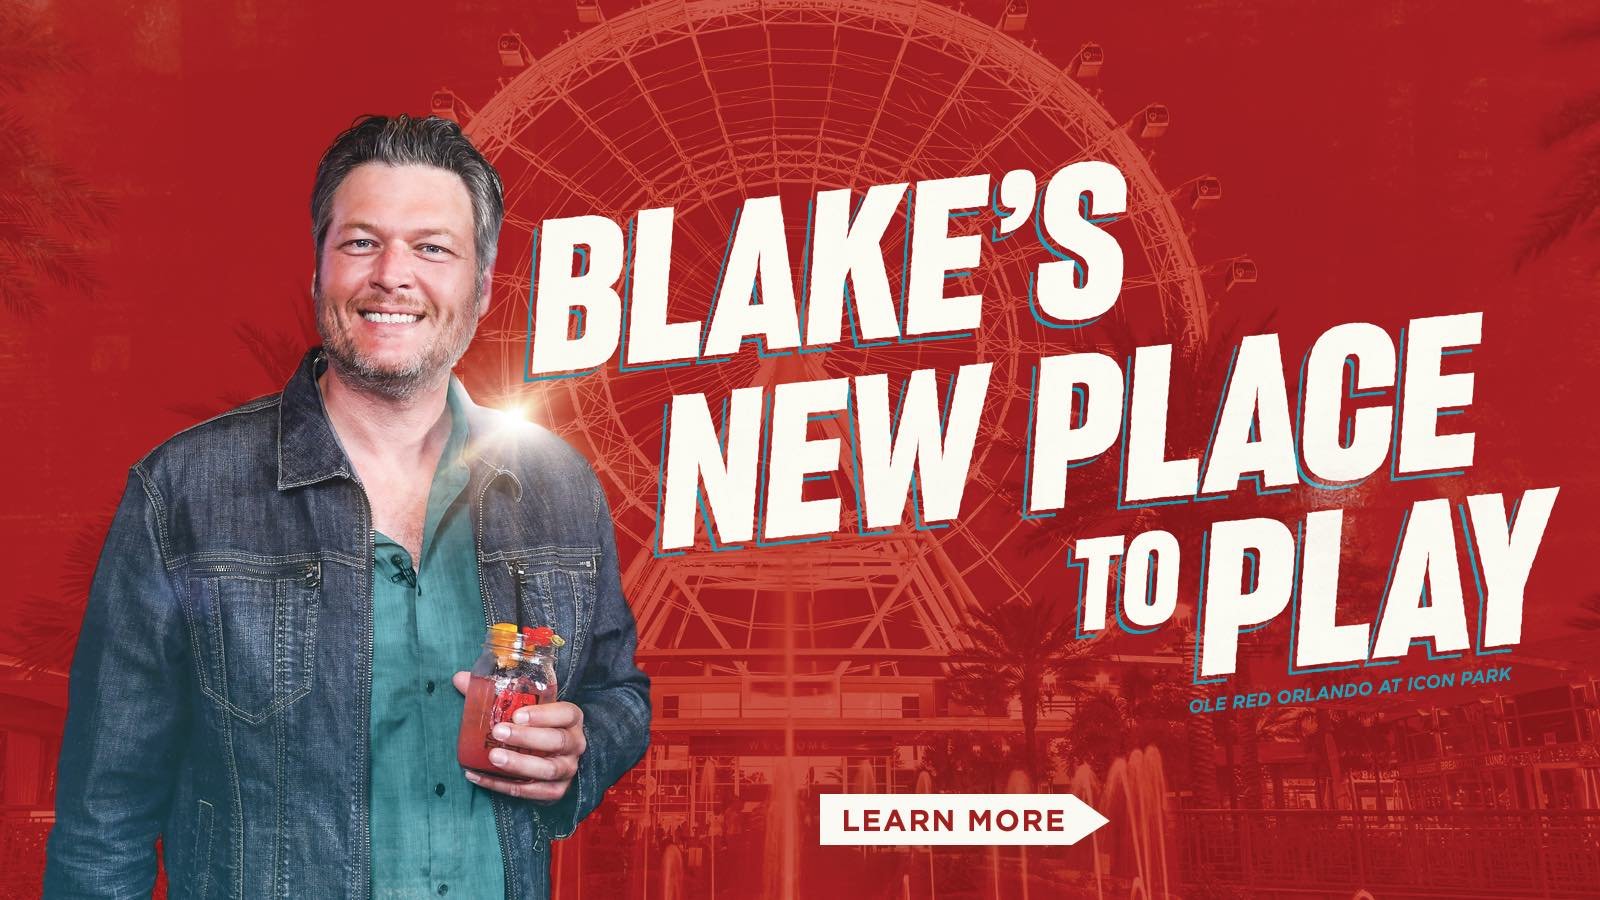 Blake's New Place To Play - Click To Learn More